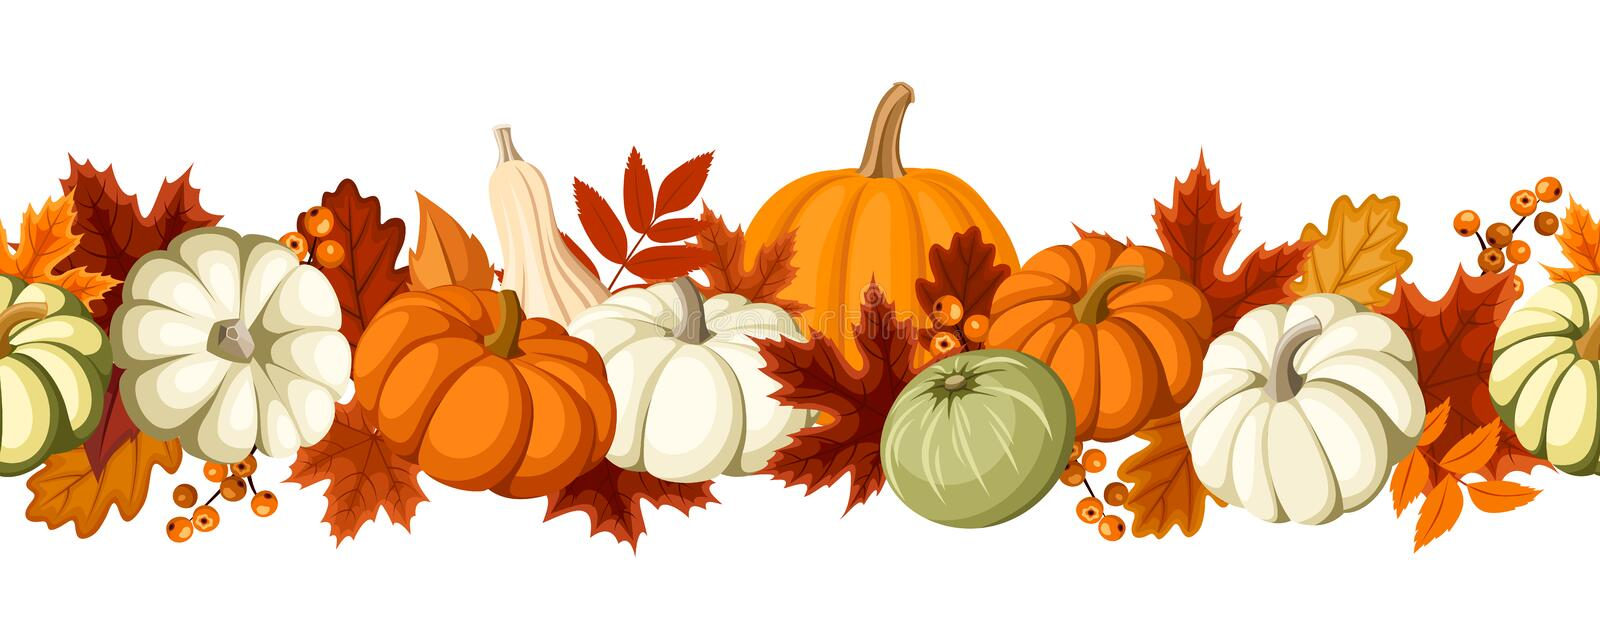 Download Horizontal Seamless Background With Pumpkins And Autumn Leaves. Vector Illustration. Stock Vector - Illustration of illustration, border: 45042013